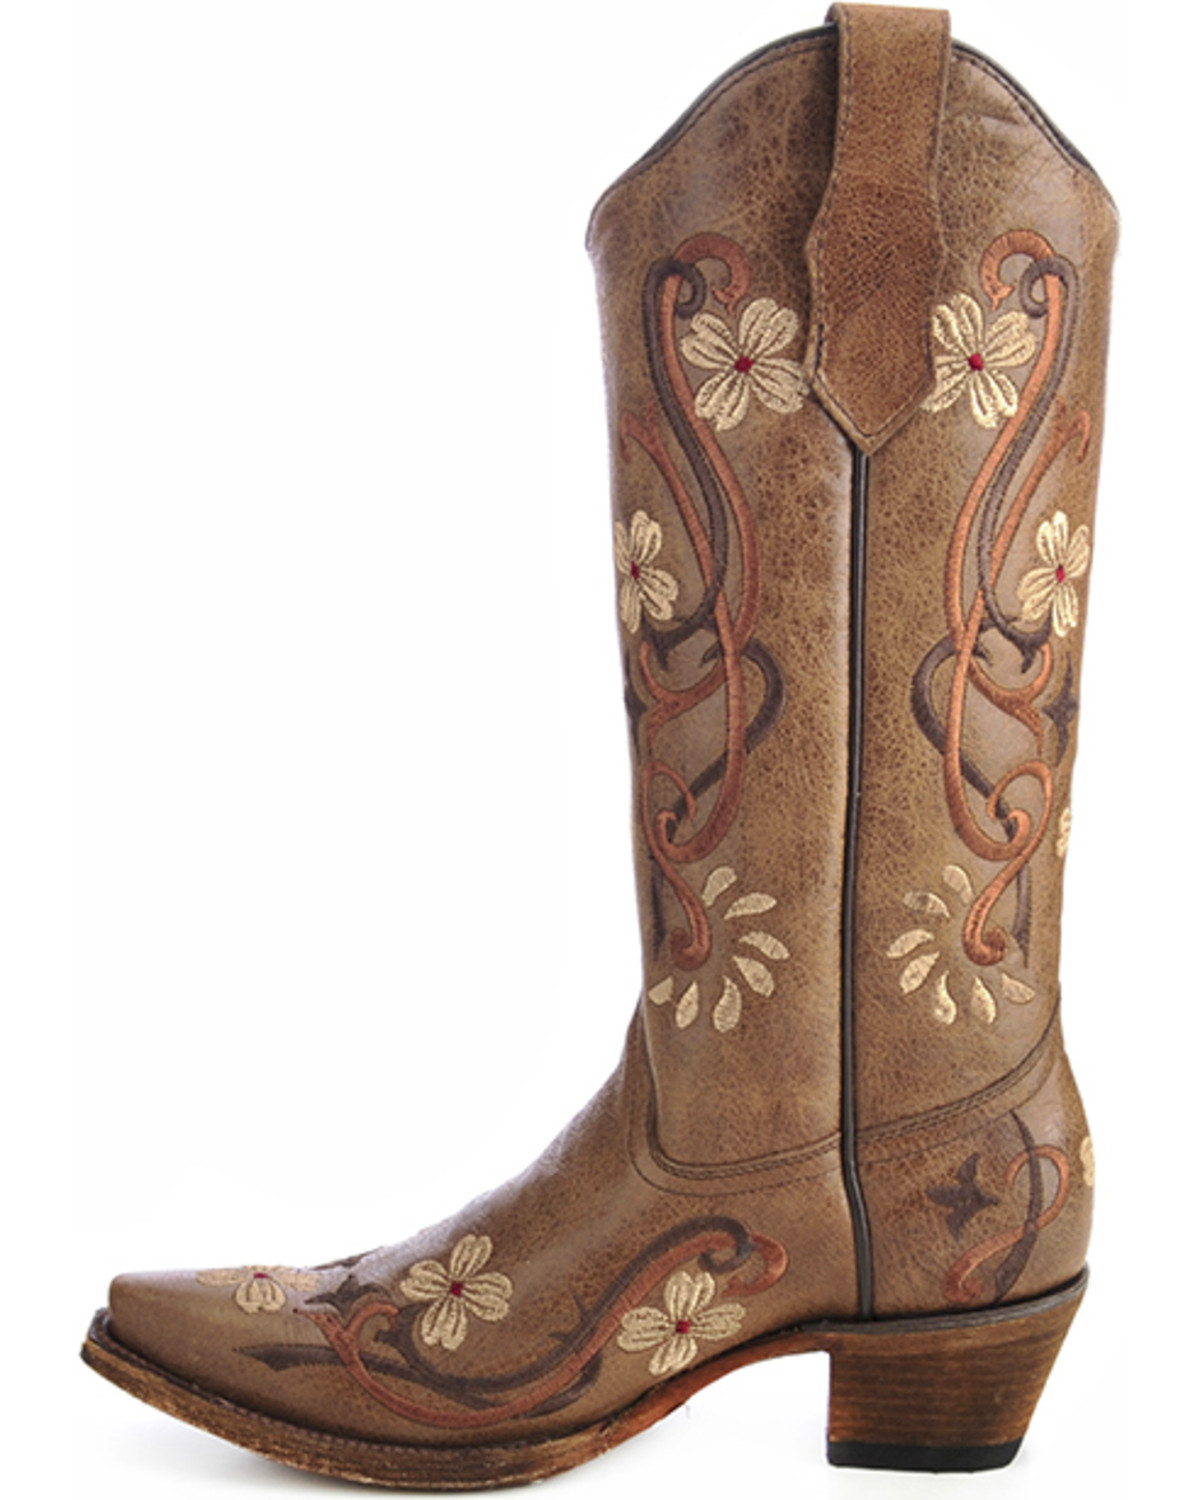 Circle g women 39 s floral embroidered western boots boot barn for International decor outlet darien georgia